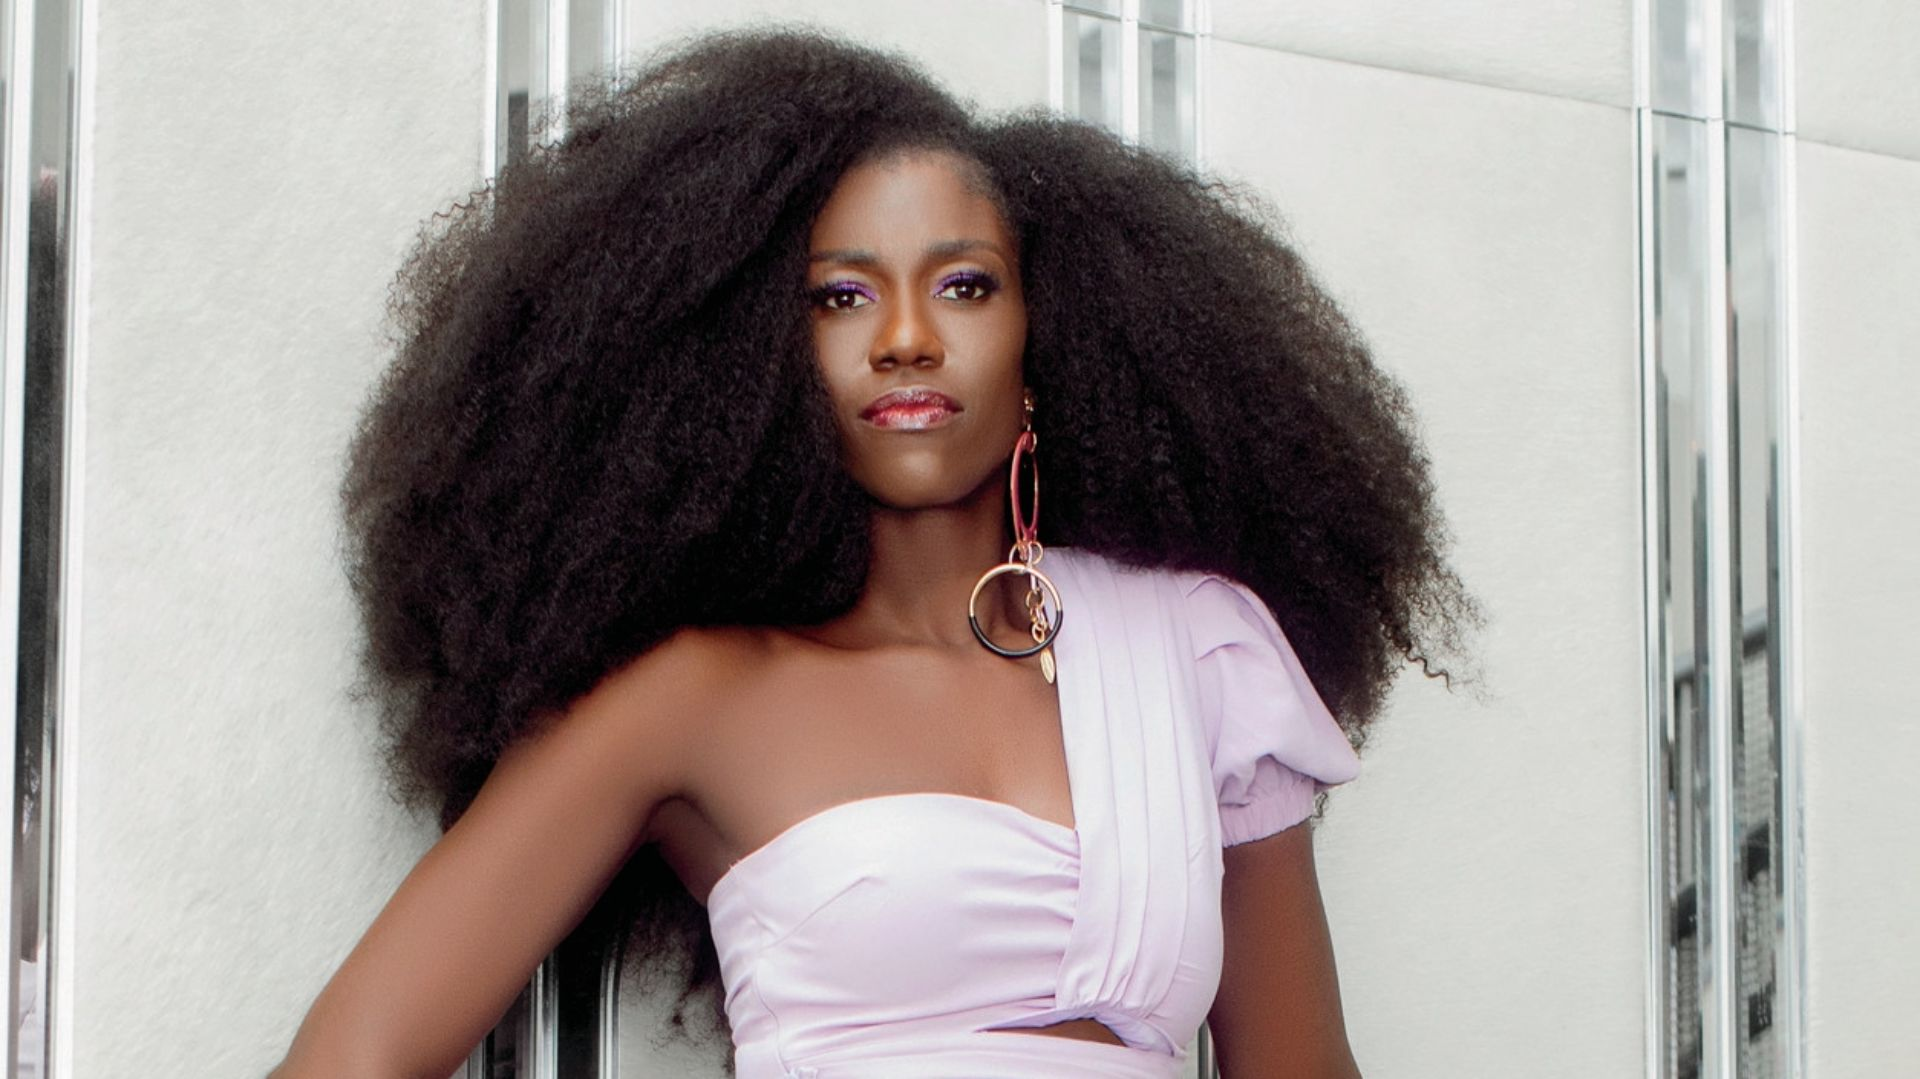 Bozoma Saint JohnWants Black Women To Have Permission To Be Themselves In Every Space They're In